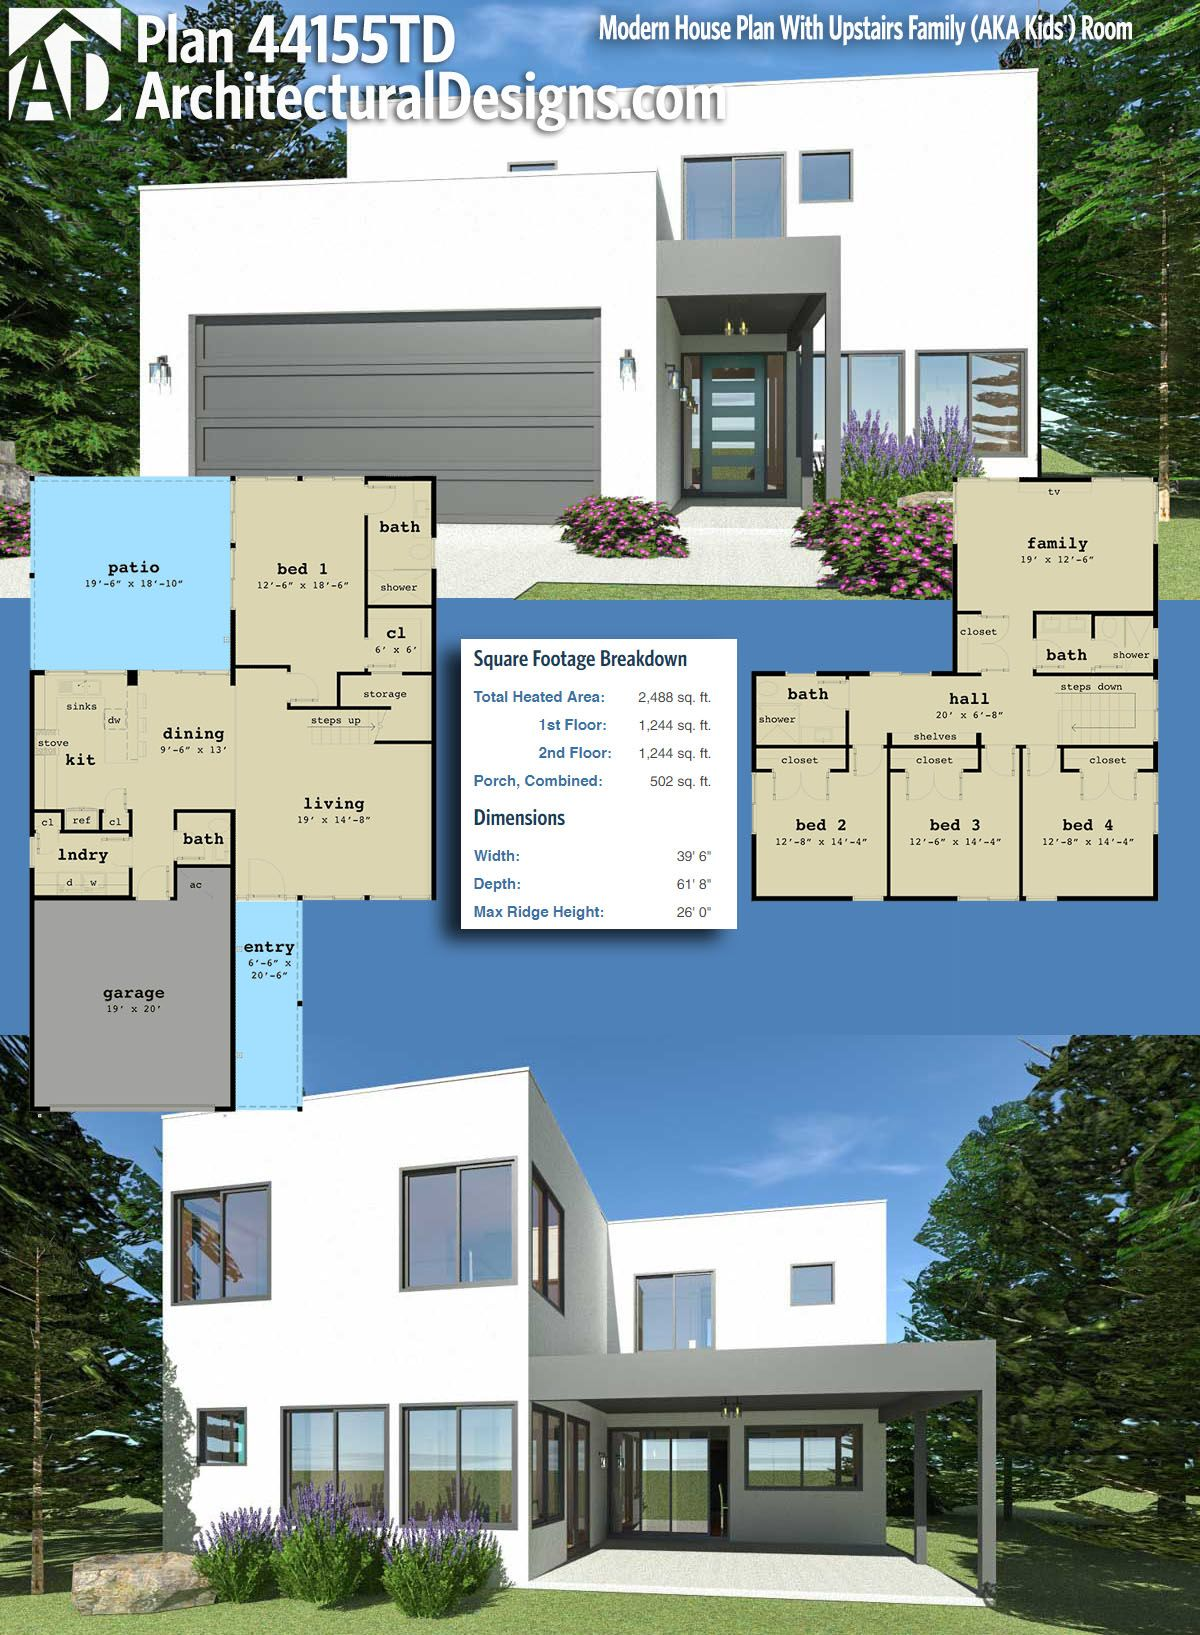 Architectural Designs Modern House Plan 44155TD gives